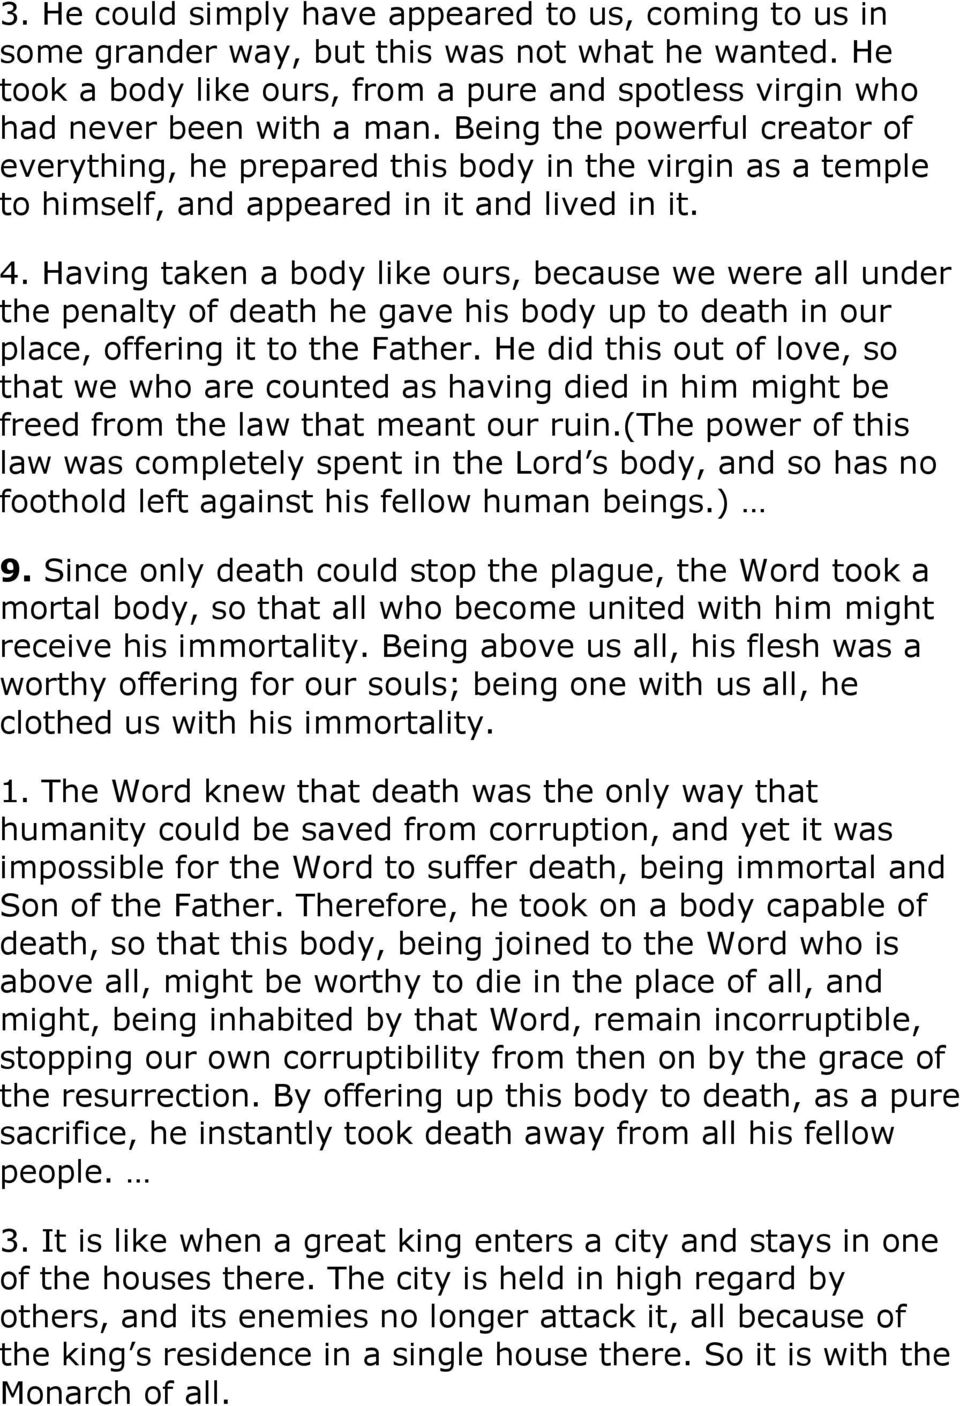 Having taken a body like ours, because we were all under the penalty of death he gave his body up to death in our place, offering it to the Father.